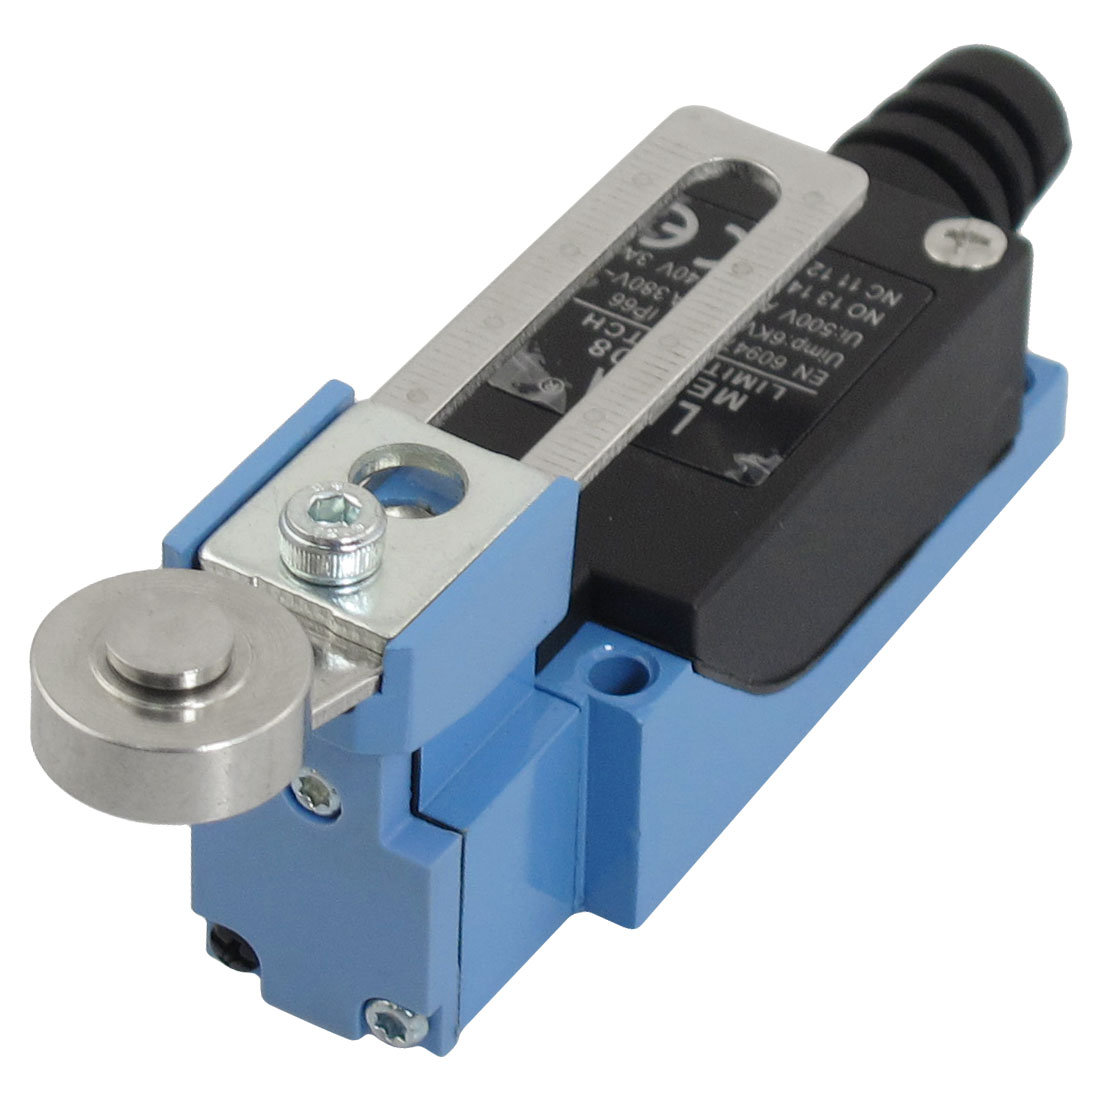 SPDT Momentary Adjustable Rotary Roller Lever Limit Switch ME-8108 for CNC Mill Plasma